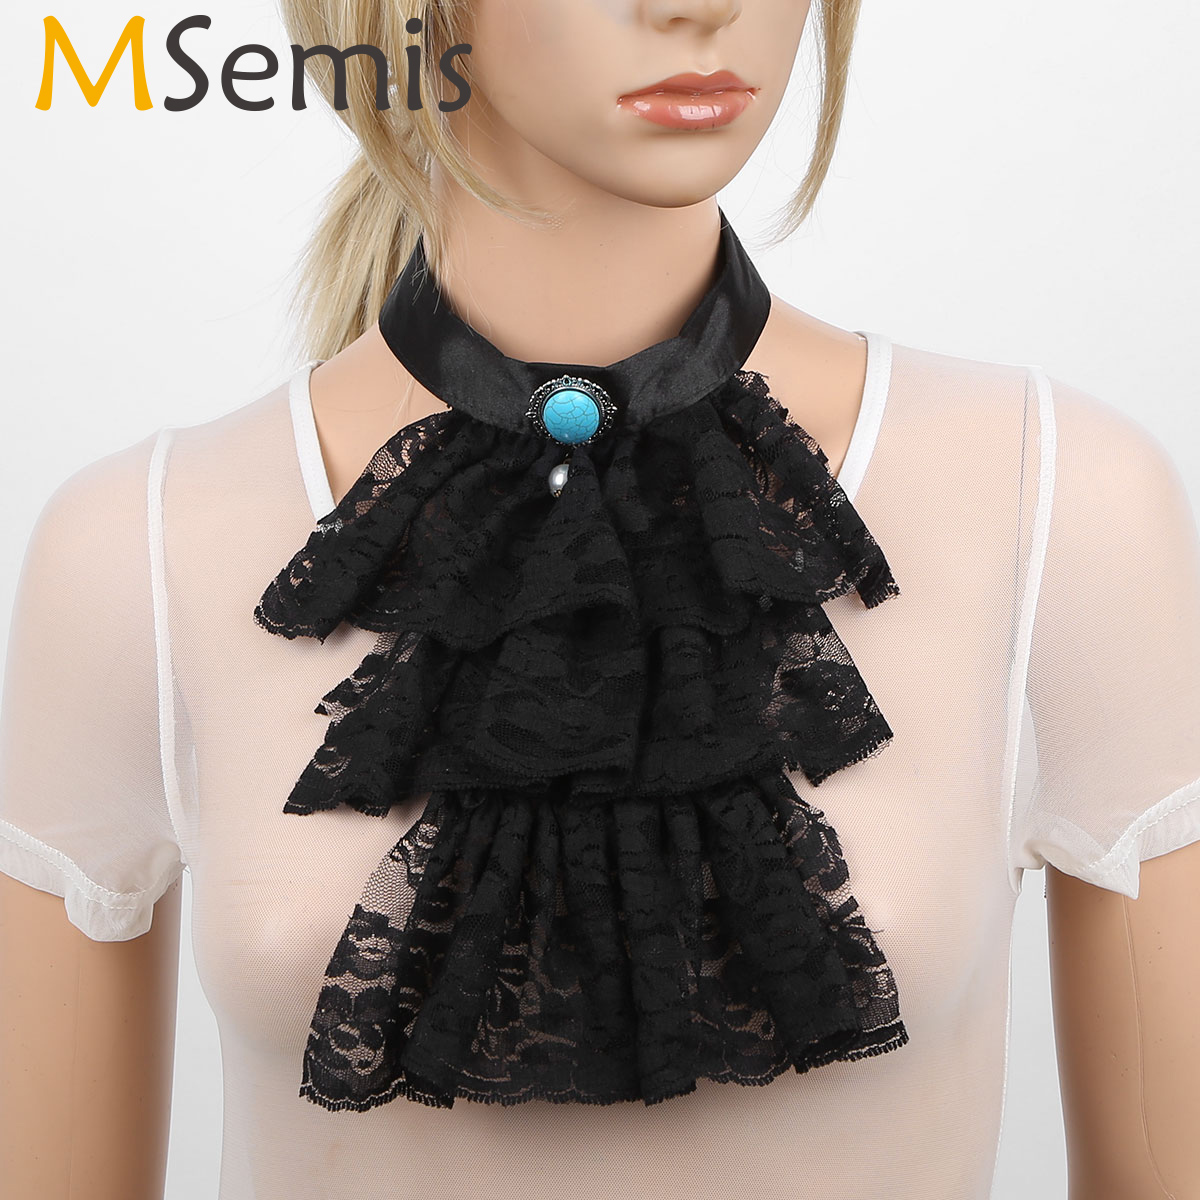 MSemis Men Women Victorian Lace Jabot Detachabl Steampunk Neck Wear Collar Stage Party Colonial Pirate Vampire Costume Accessory